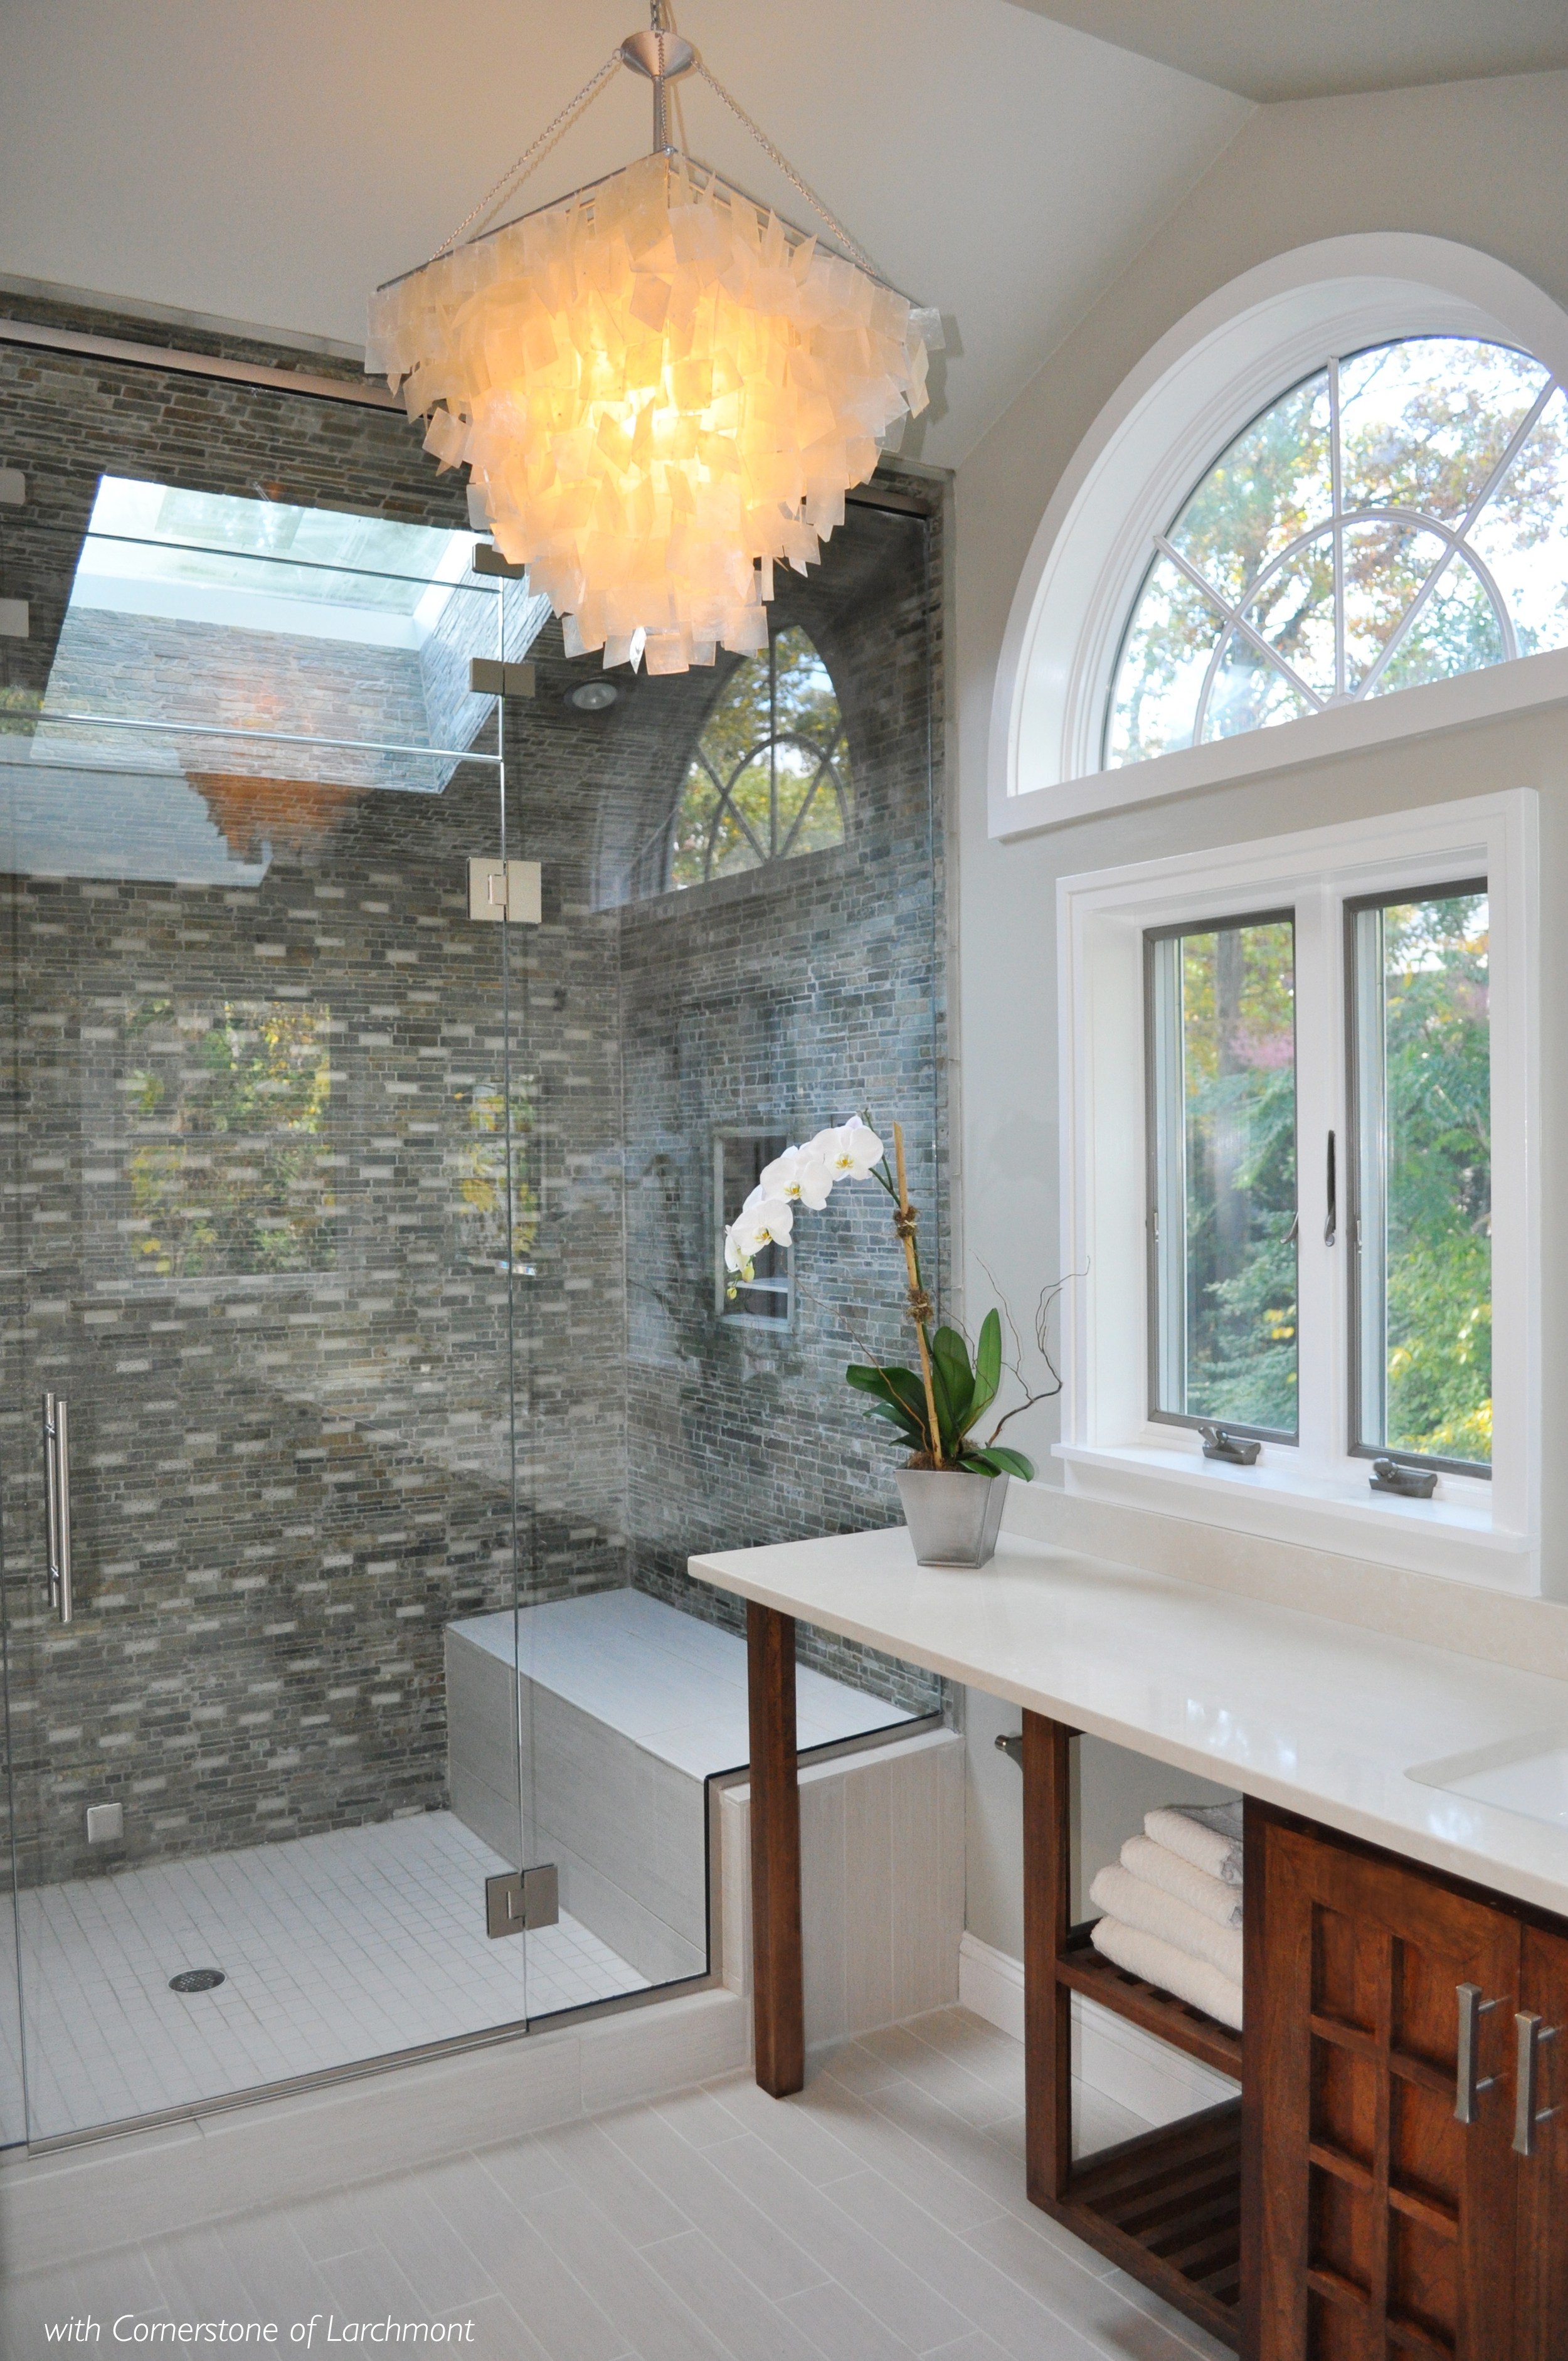 MasterBath_Bathroom Renovation_Bathroom Remodel_Bathroom Slate and Glass Tiles_Bathroom Lighting_Kim A Mitchell with Cornerstone of Larchmont.jpg